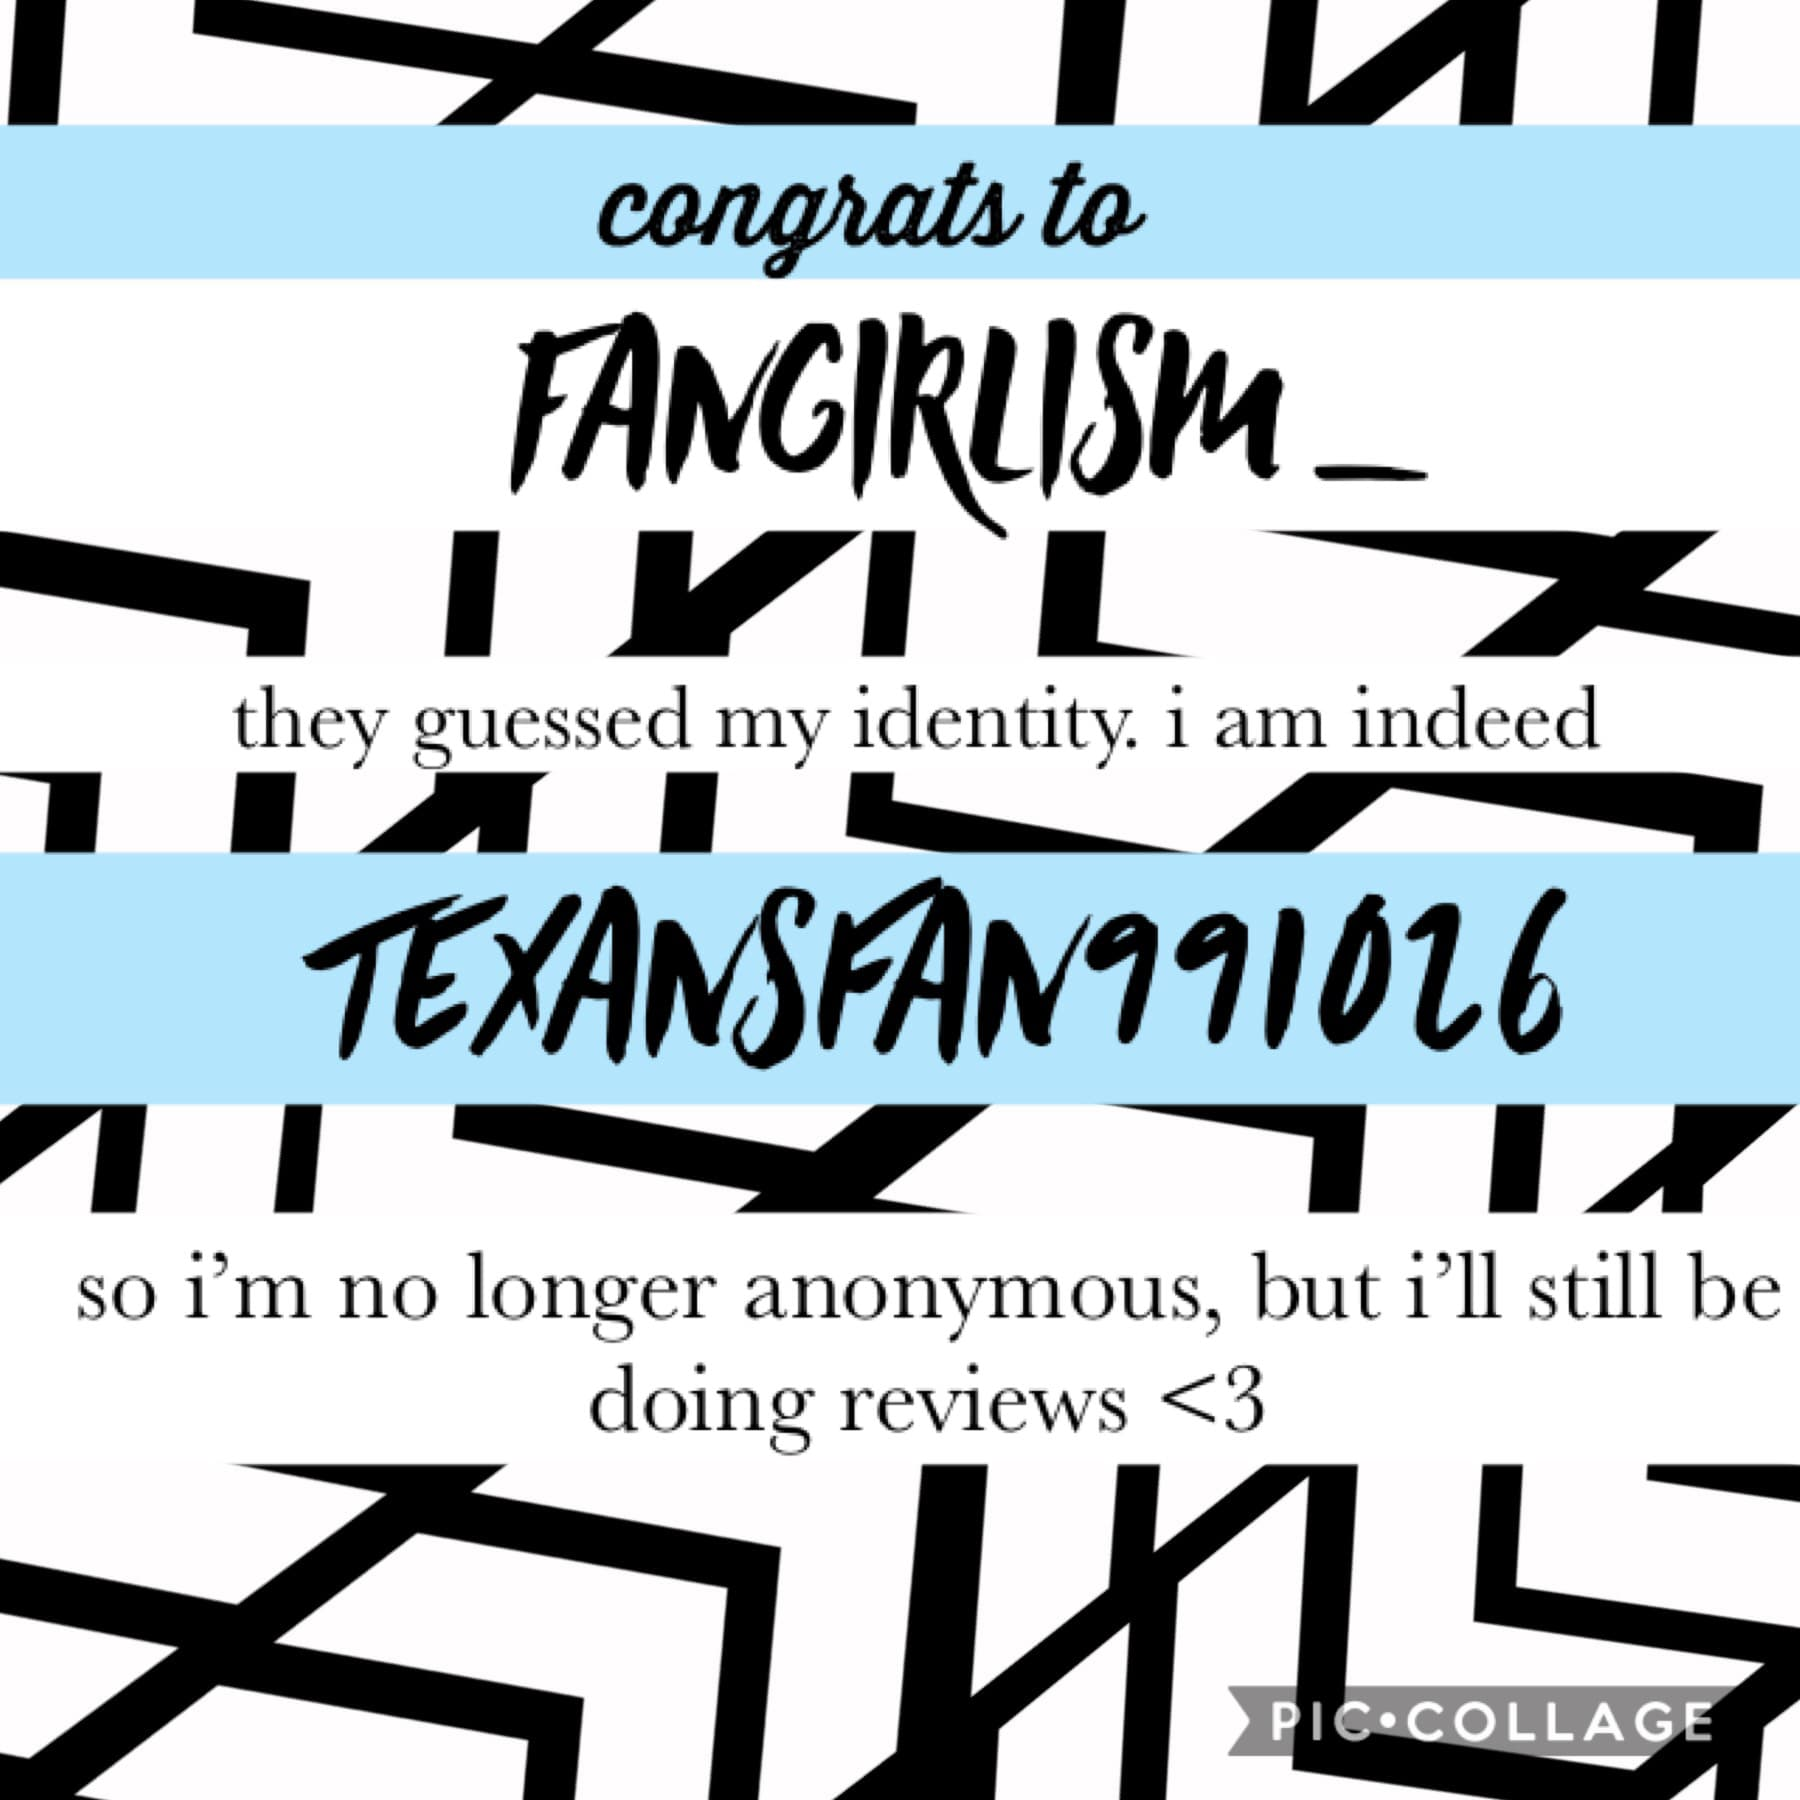 I've been exposed!! Congrats Fangirlism_. You'll get a fanpage!